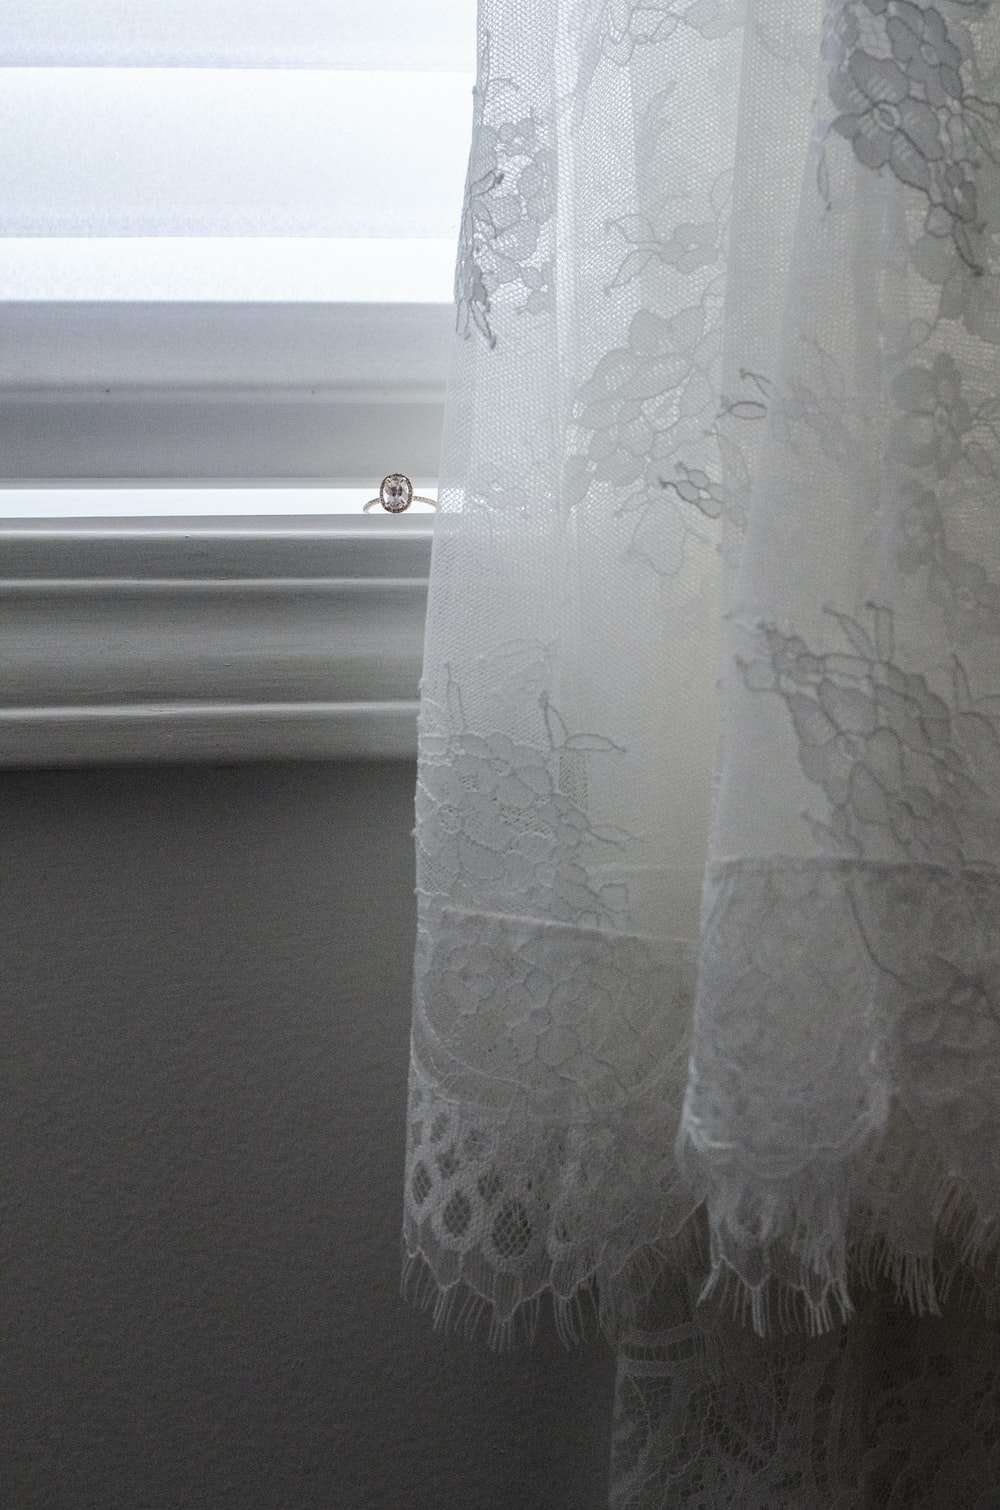 white floral window curtain near white window blinds